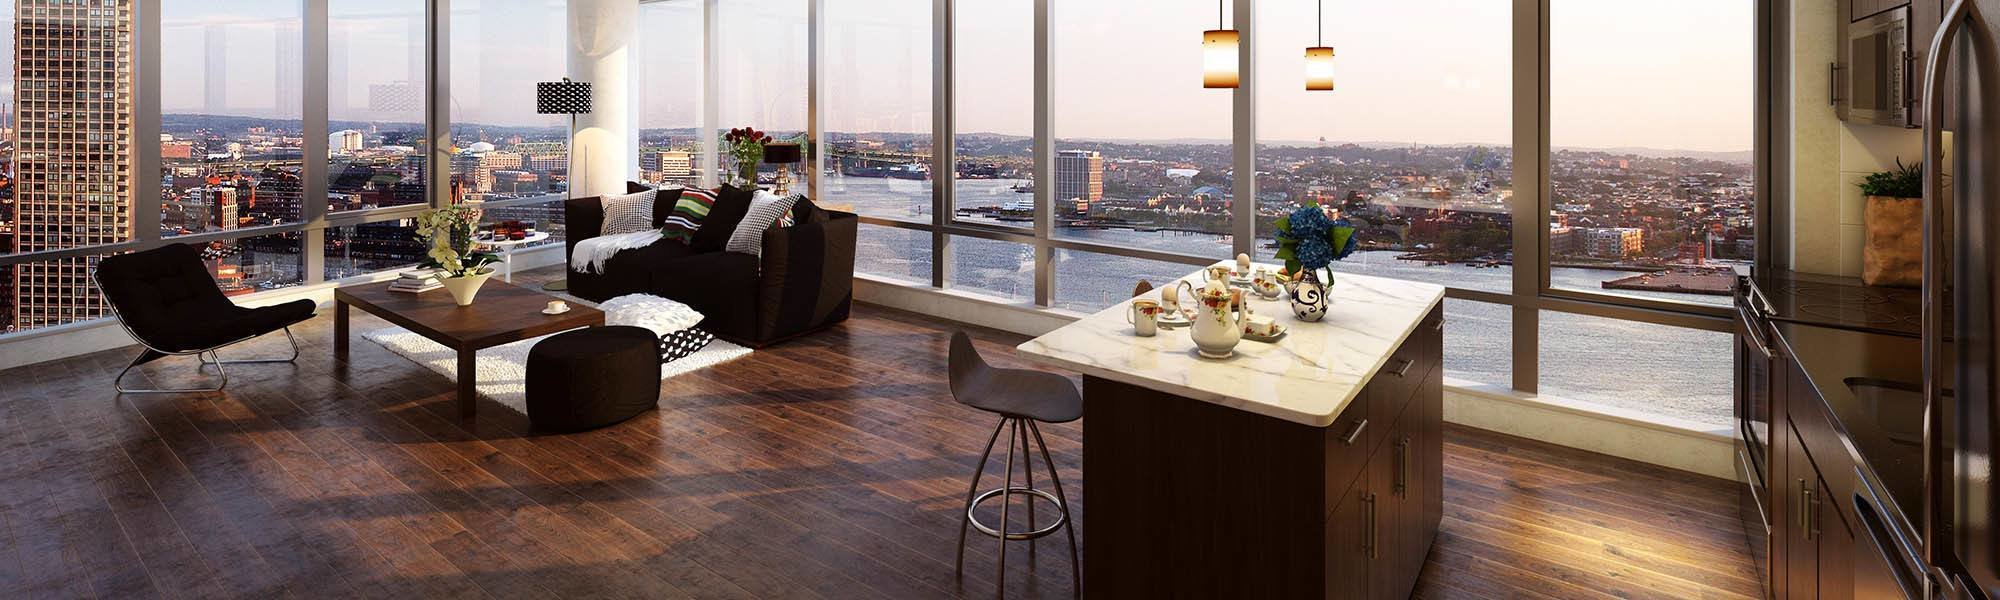 Best 3 Bedroom Apartments Boston The Benjamin With Pictures